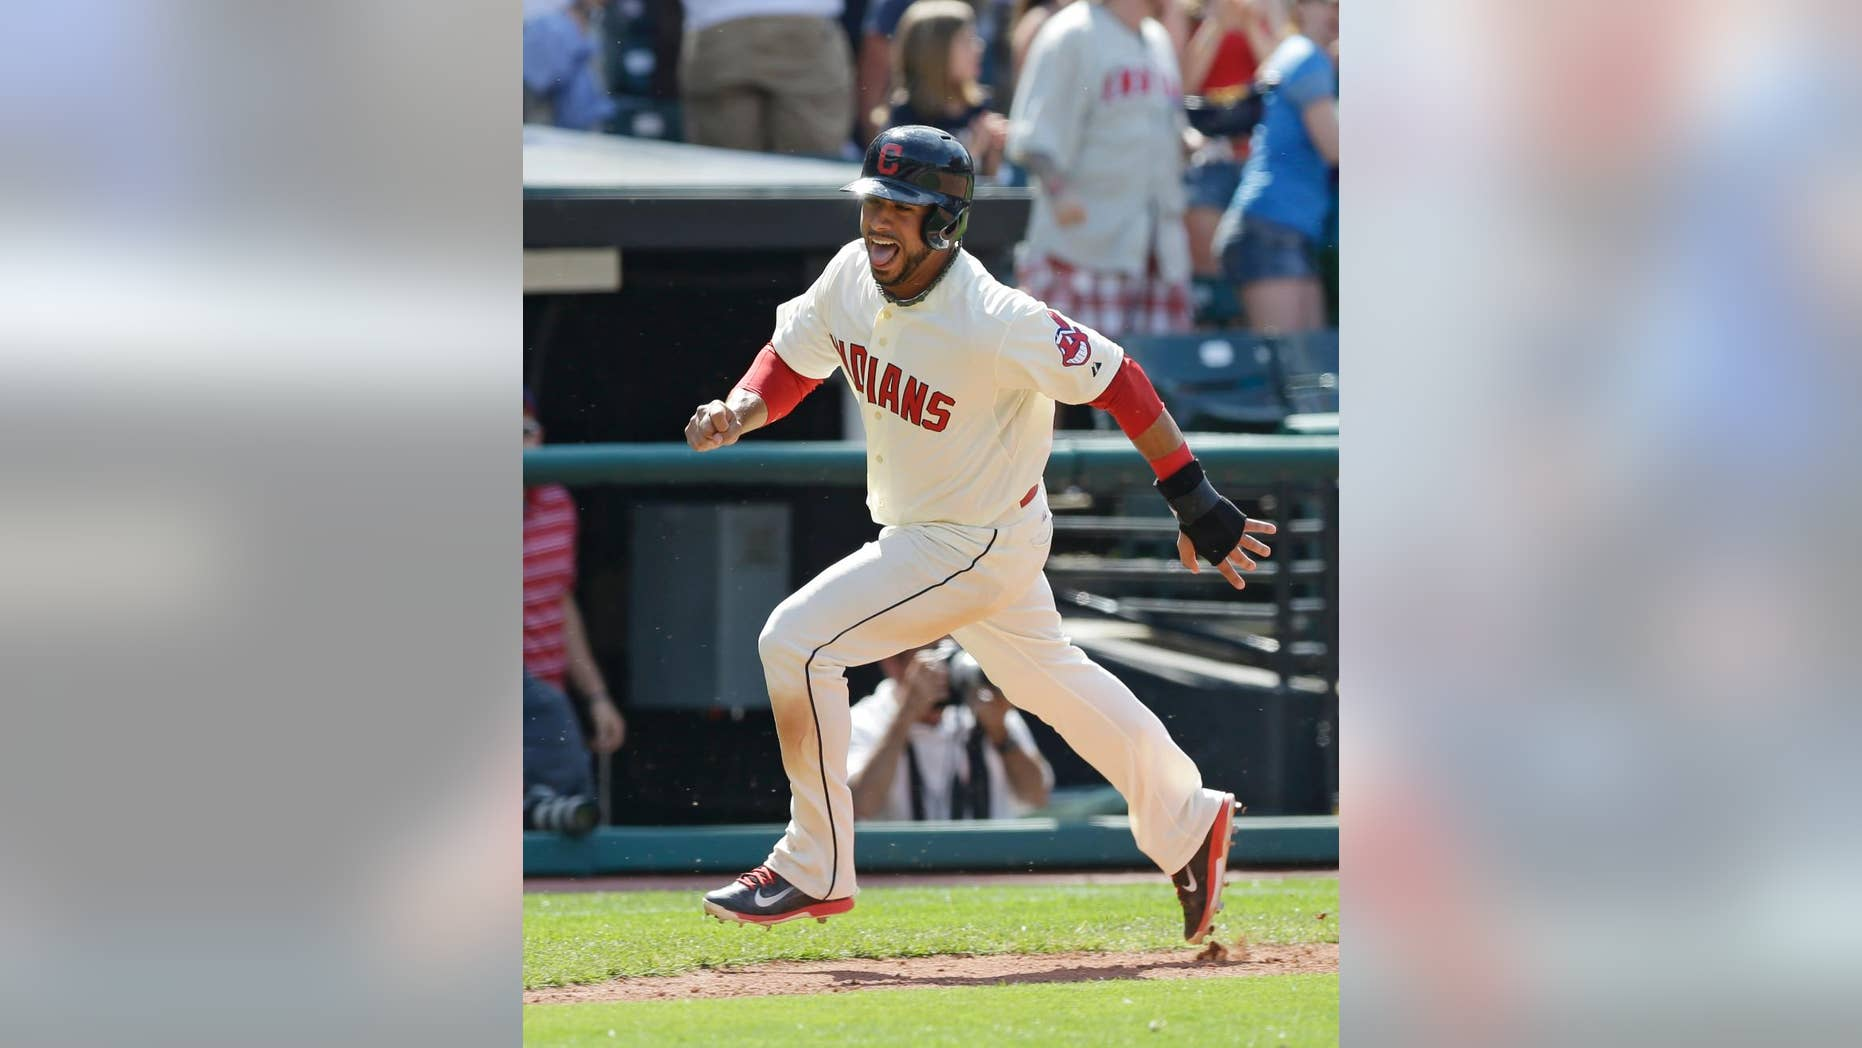 Cleveland Indians' Mike Aviles scores on a game-winning two-run home run hit by Michael Bourn in the ninth inning of a baseball game against the Colorado Rockies, Sunday, June 1, 2014, in Cleveland. The Indians defeated the Rockies 6-4. (AP Photo/Tony Dejak)